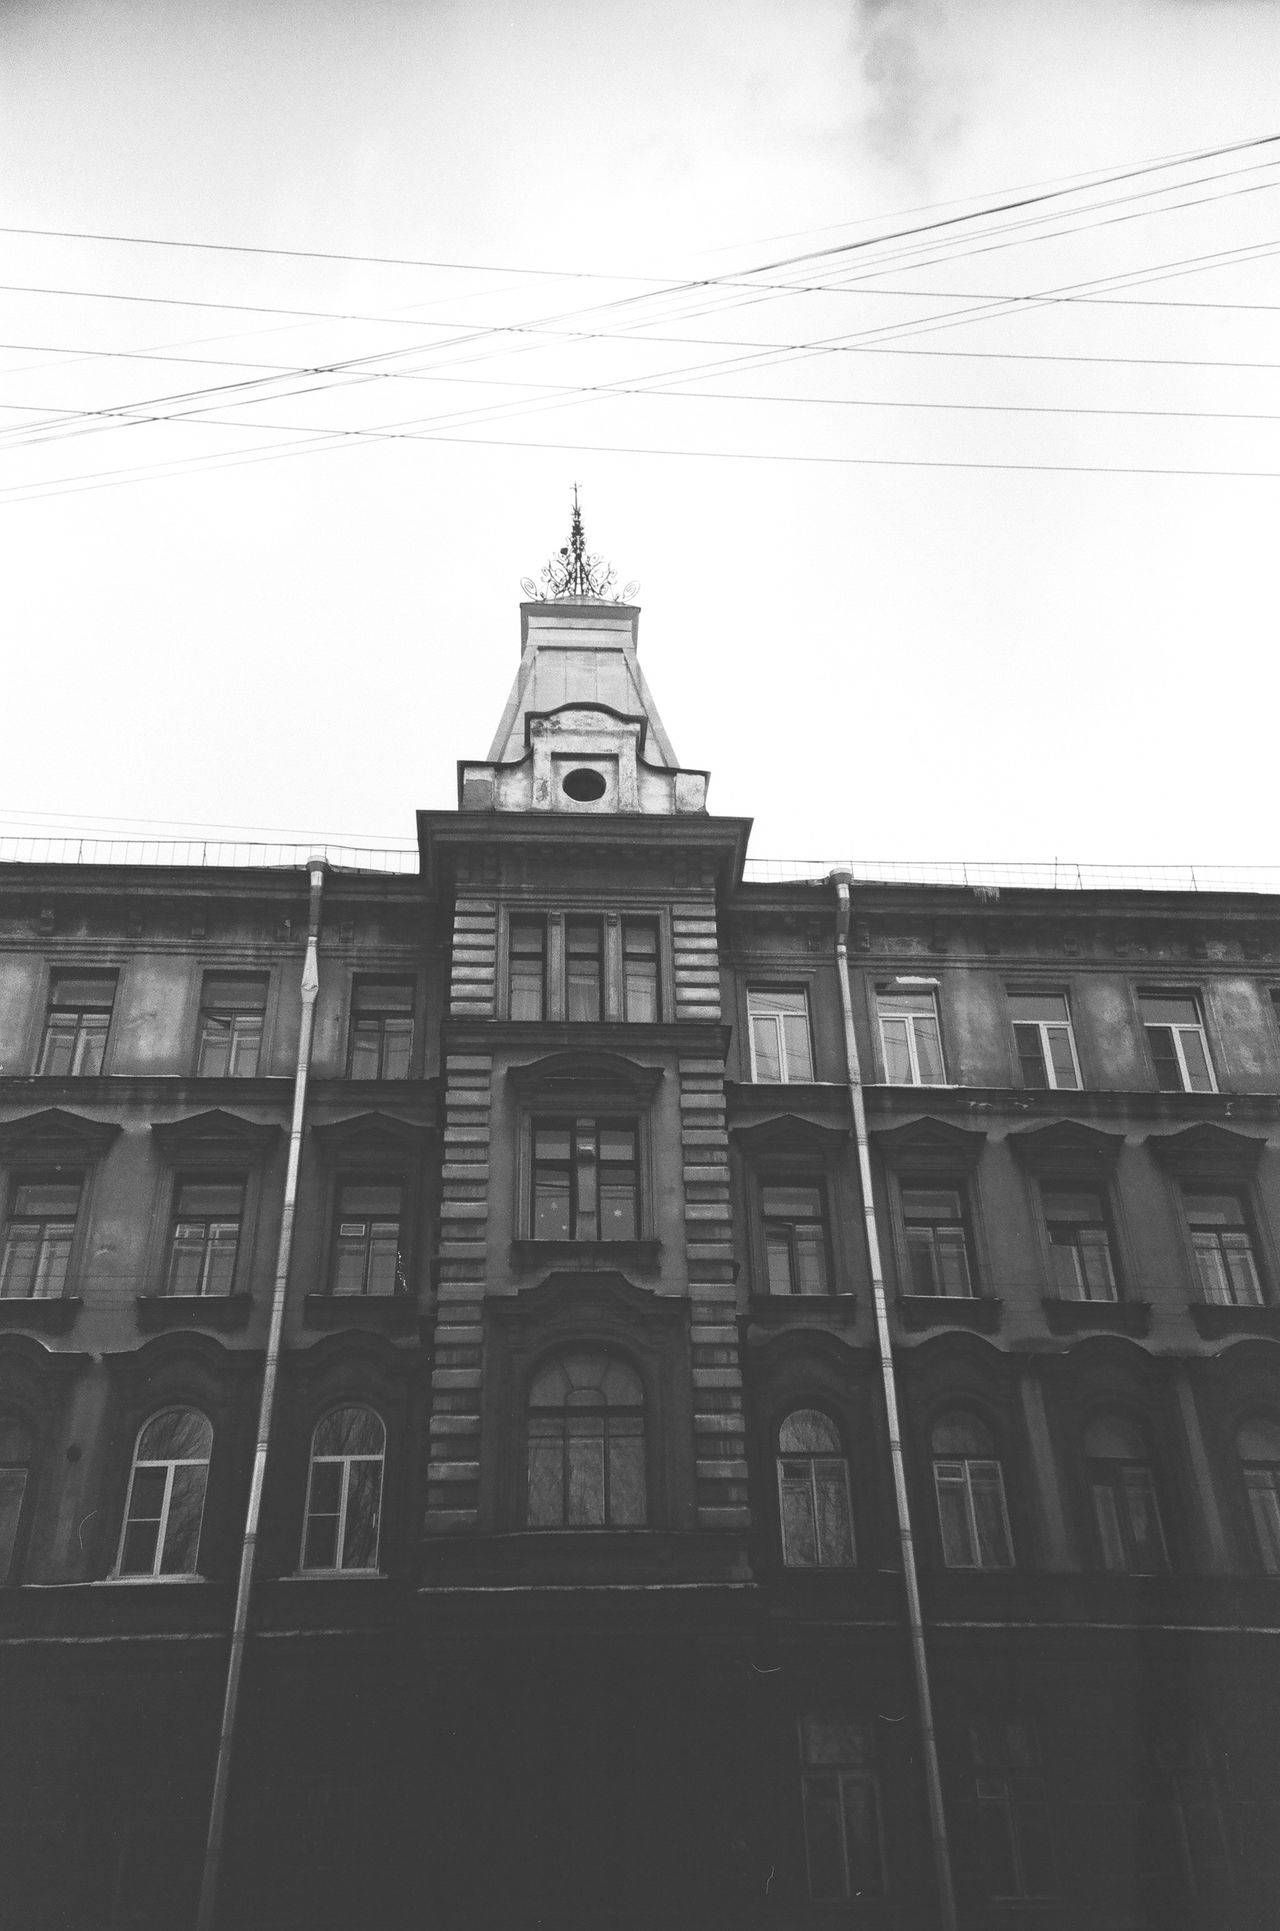 Blackandwhite Shadow Monochrome Darkness 50shades 50shadesofgrey Dark Doublecolors Anticolors Bandw Fiftyshades FiftyShadesOfGrey Façade Facades Black And White Saintpetersburg Petersburg Architecture City Slide Streets Gray Grayscale Noir Monochrome Photgraphy